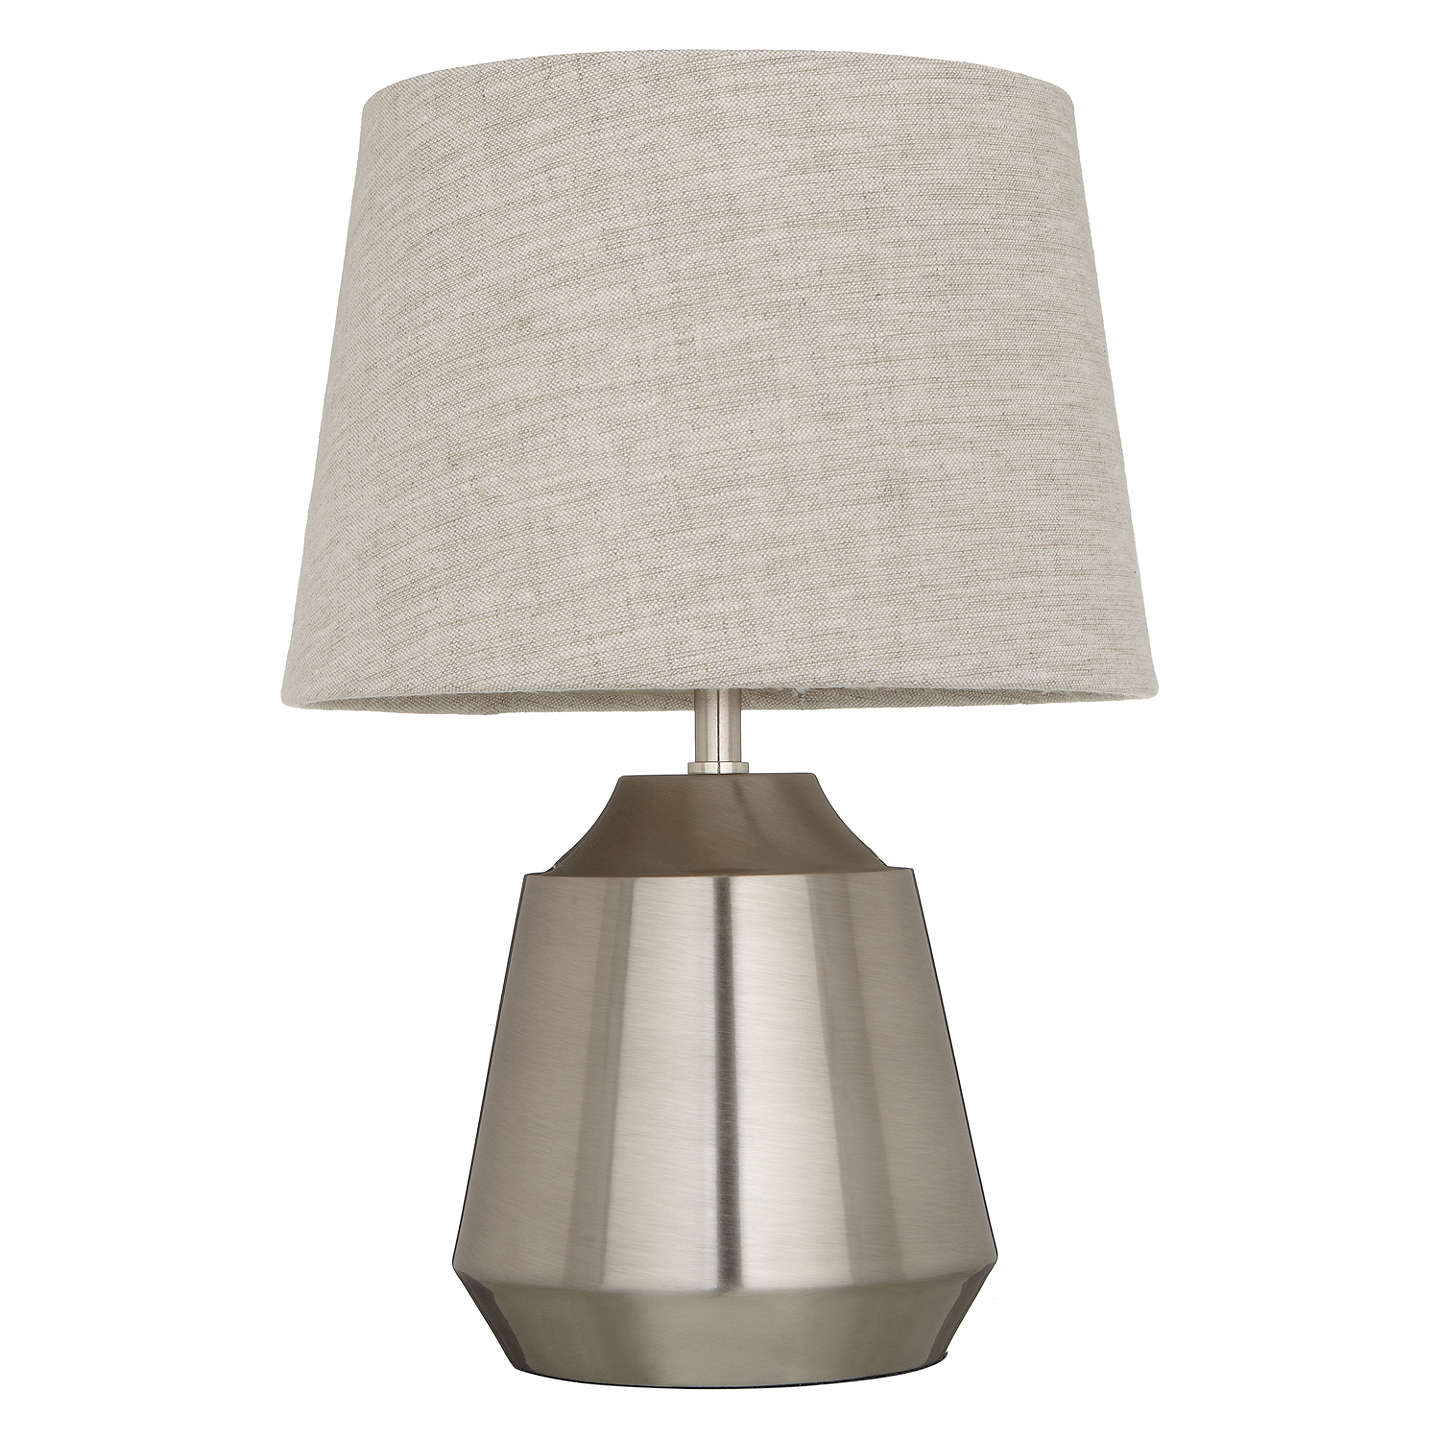 Superbe ... BuyJohn Lewis Lupin Table Touch Lamp, Satin Nickel Online At  Johnlewis.com ...